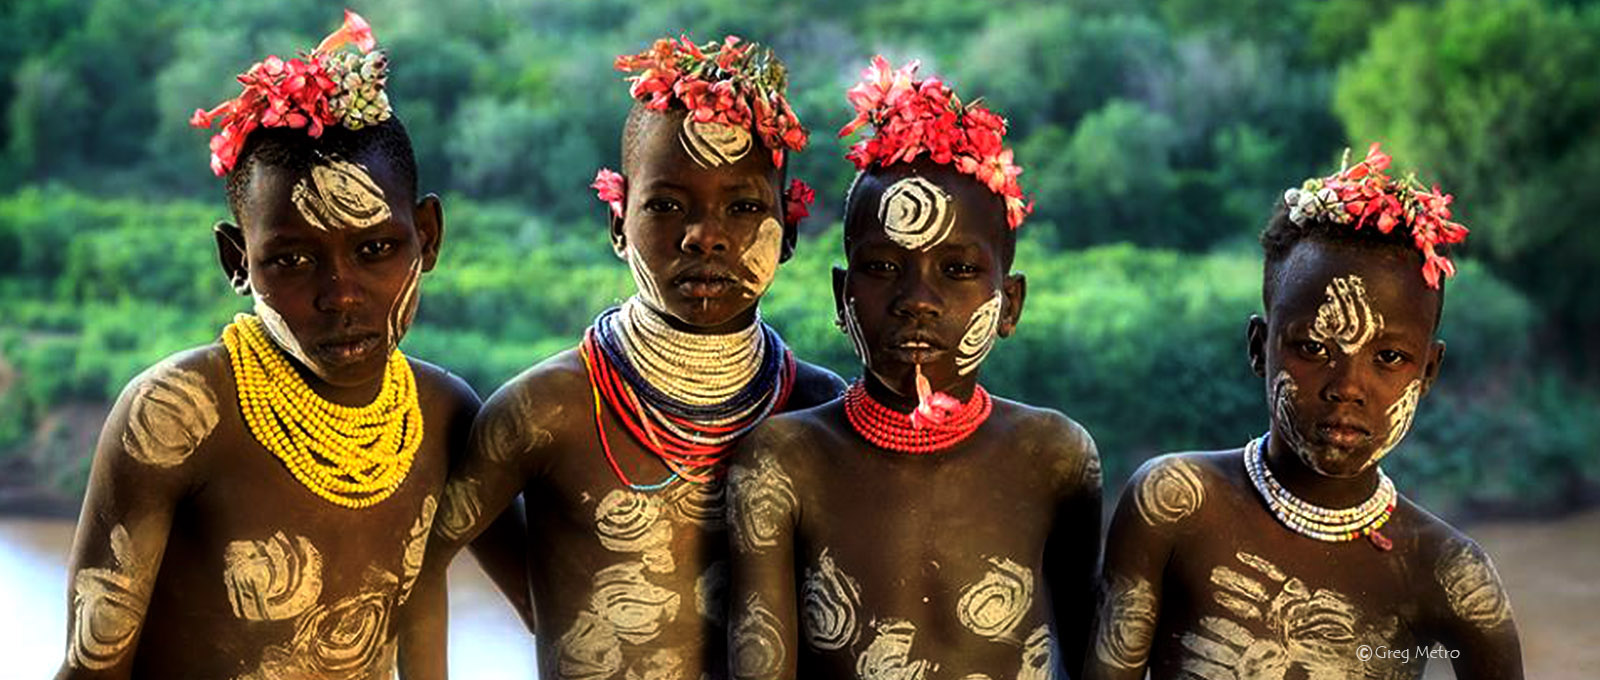 The Striking tribes of Omo valley